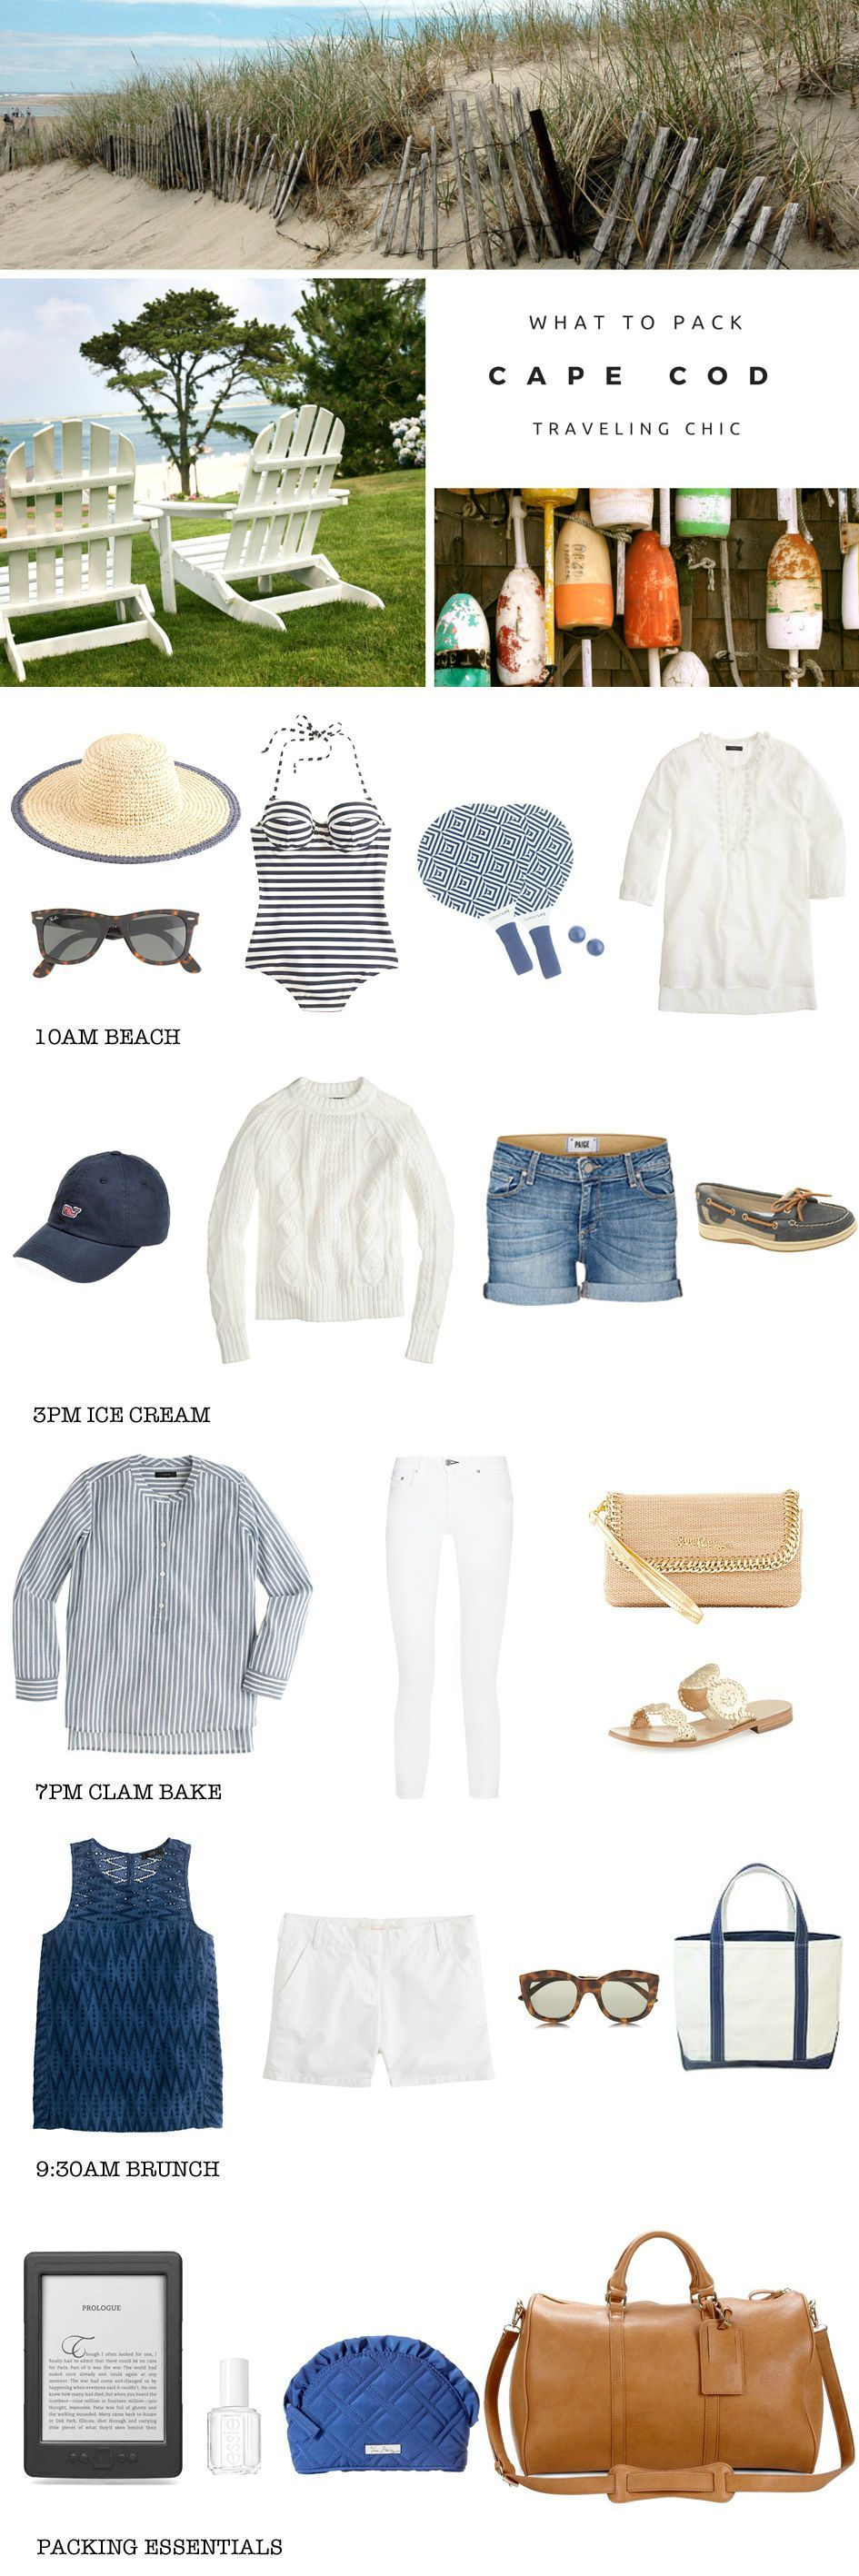 1b5ef5ad5caddaf717410709923e9ff0 - What to pack for Cape Cod: packing lists and outfit ideas